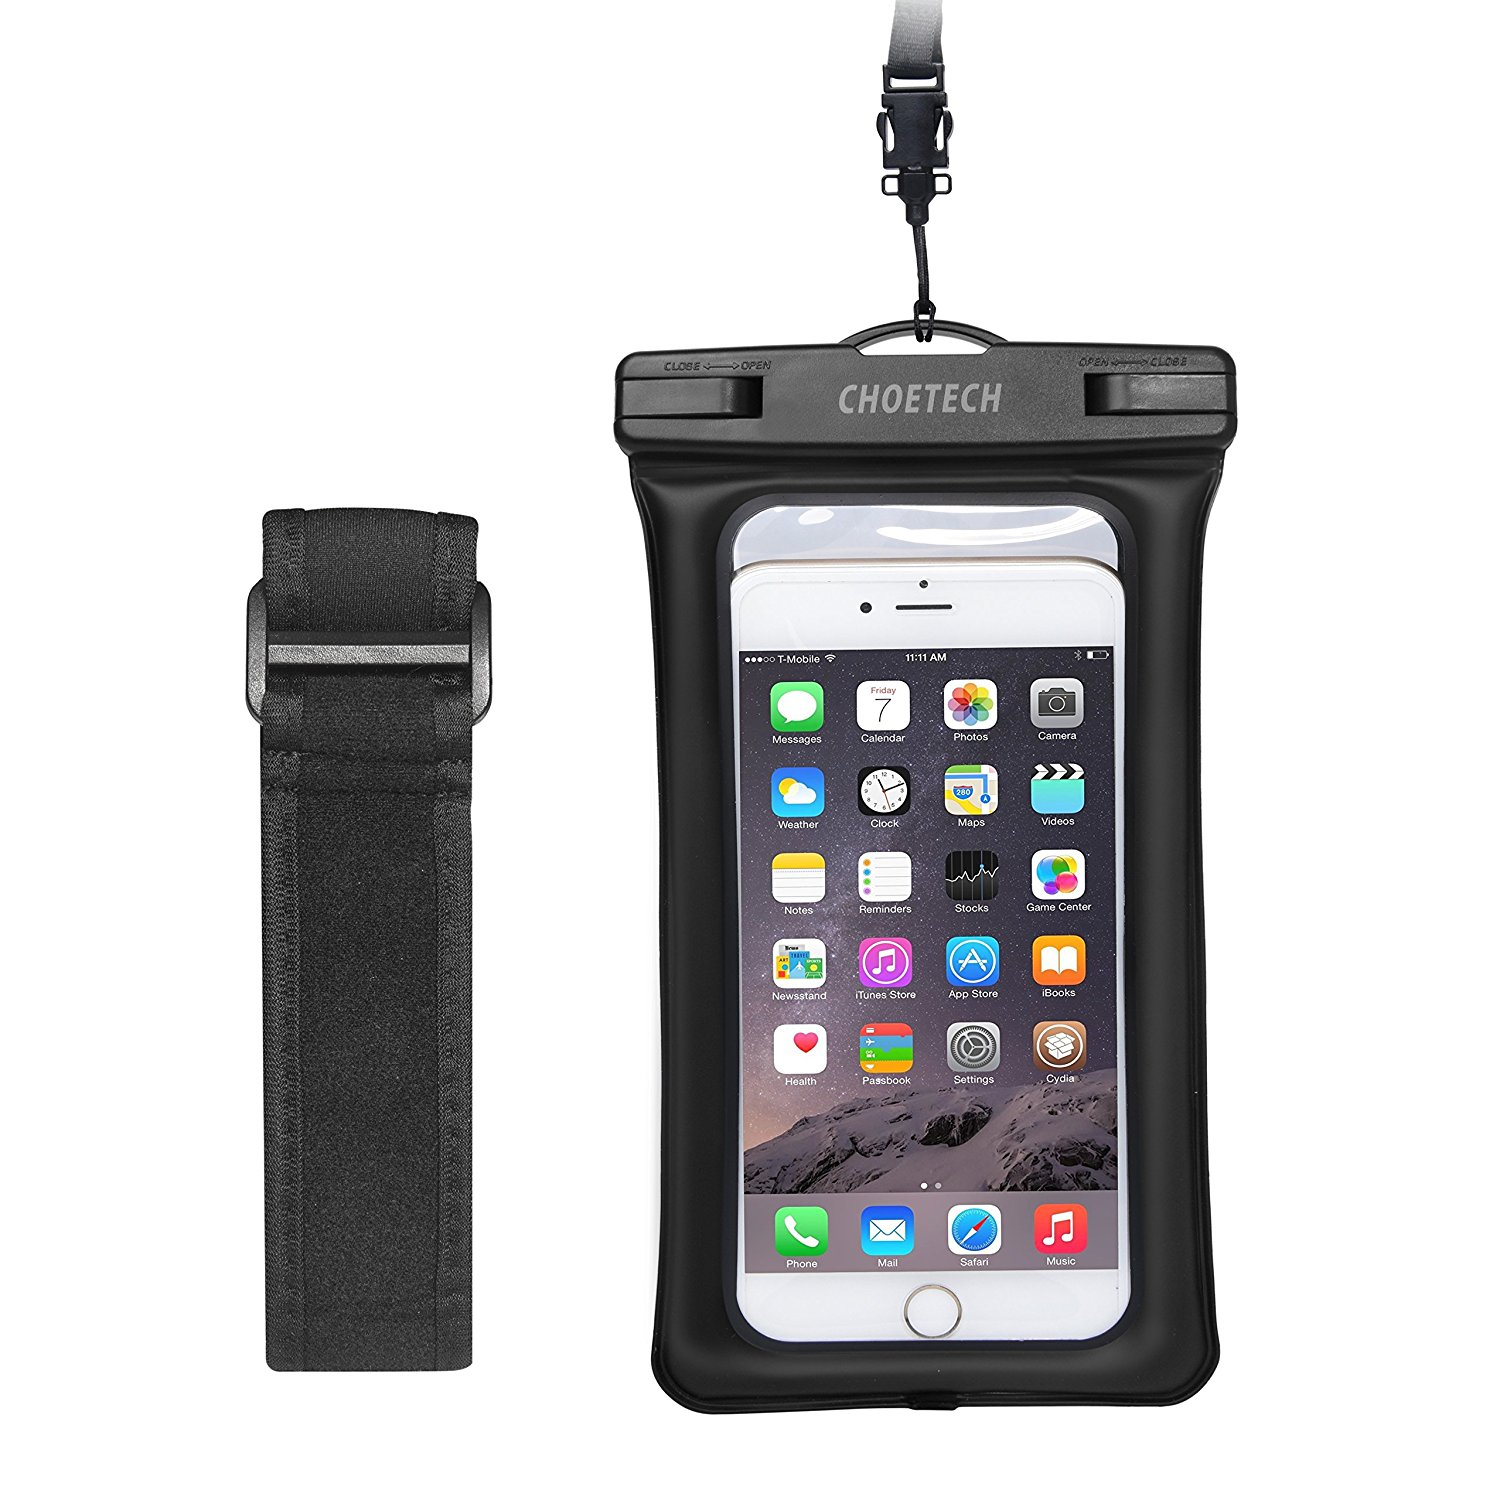 Floating Waterproof Case, Clear Transparent Cellphone Waterproof, Dustproof Dry Bag With Armband & Neck Strap for iPhone 7, 7 Plus, 6, 6s, and All Devices Up to 6 Inches